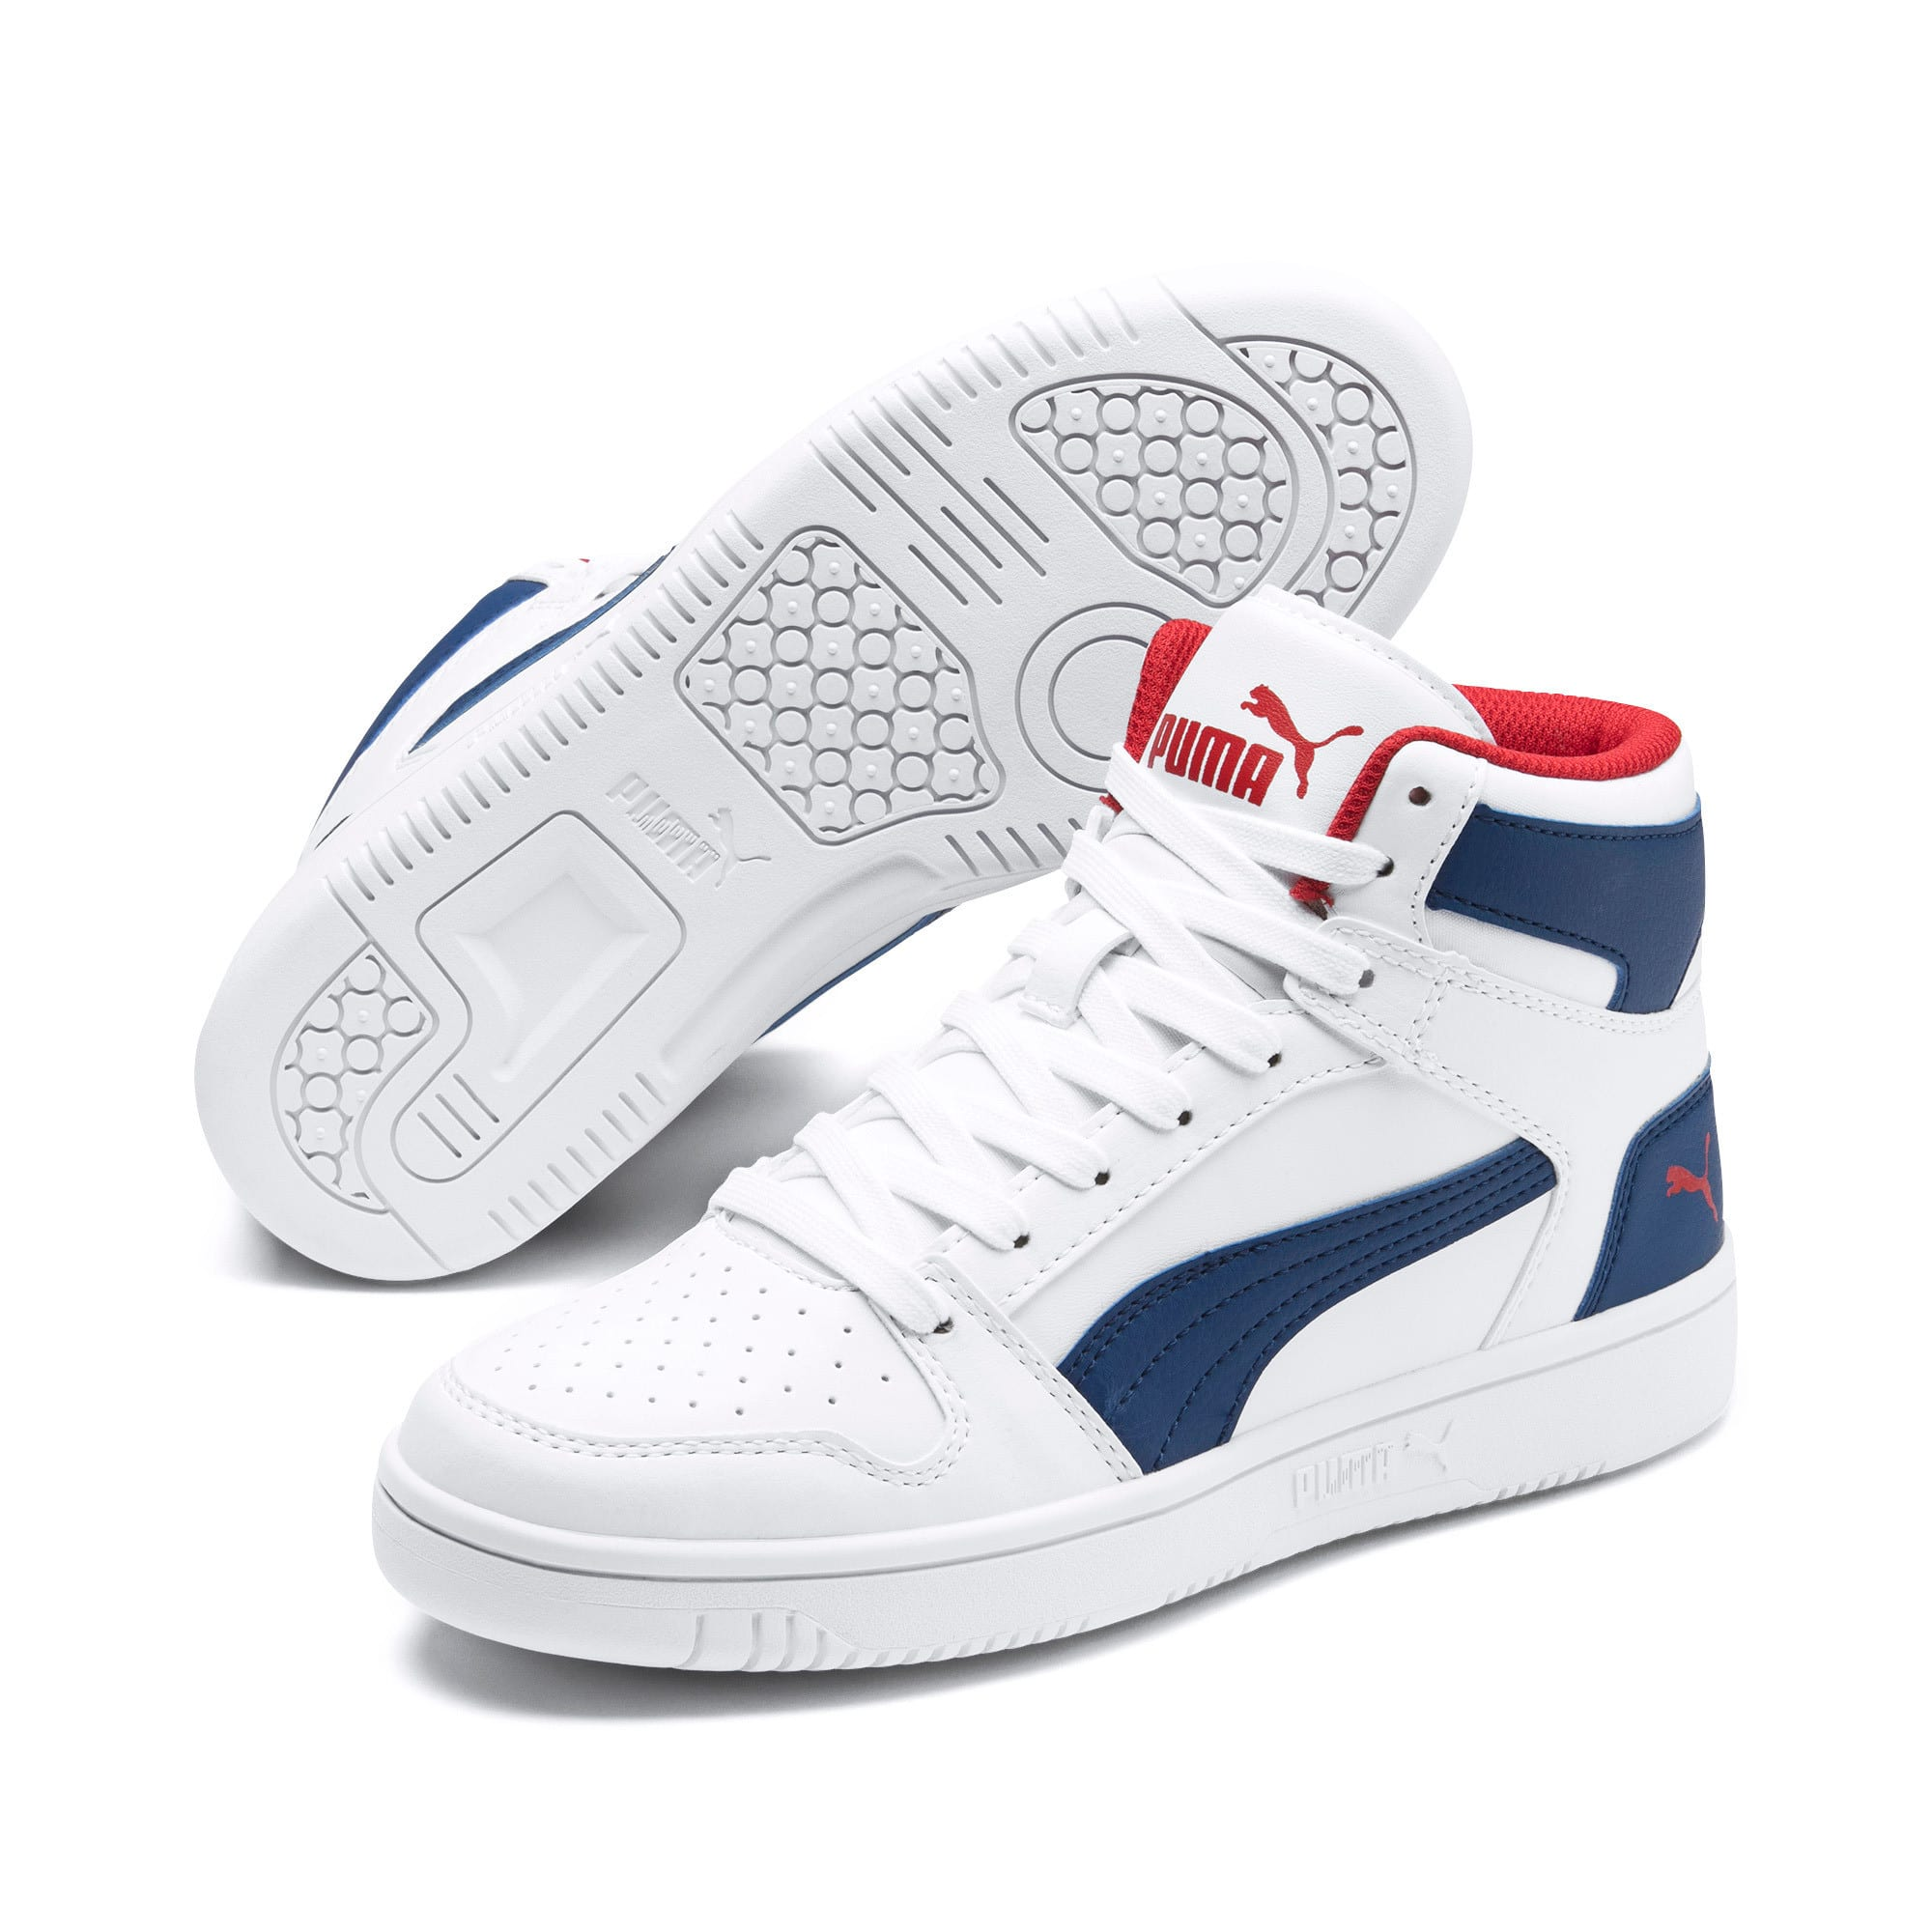 Thumbnail 2 of Rebound Lay-Up SL Youth Trainers, White-Galaxy Blue-Red, medium